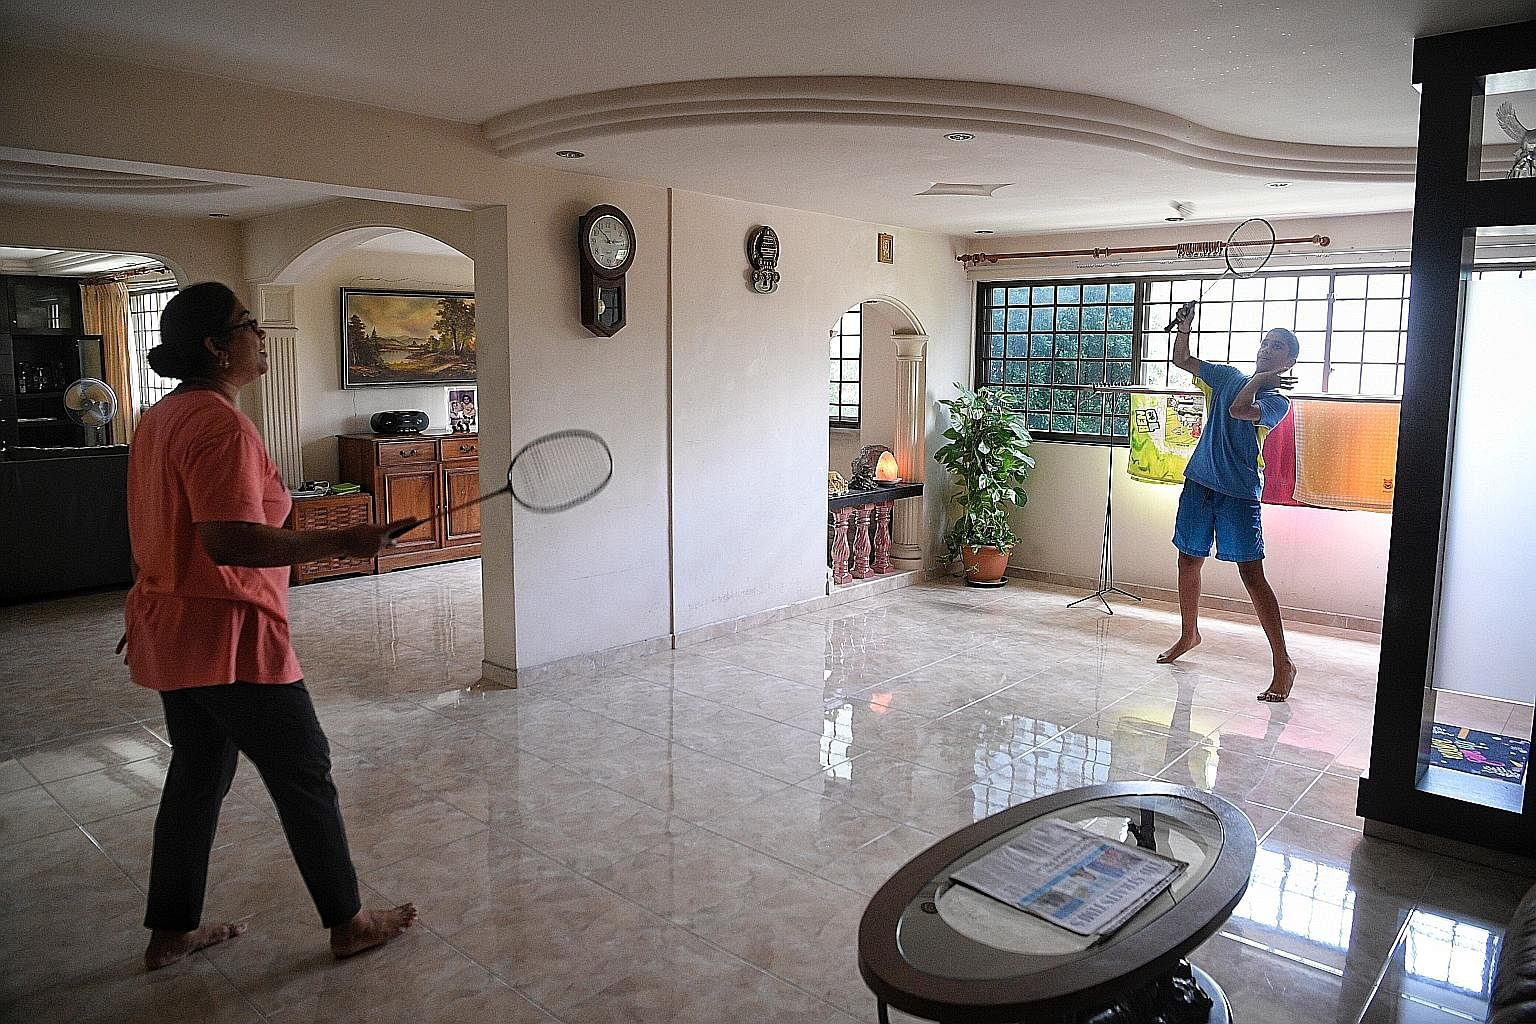 Mrs Indra Rajen in the family's jumbo flat in Yishun, which is spacious enough for a game of badminton with her 12-year-old son, Suneet Rajendraprasad.